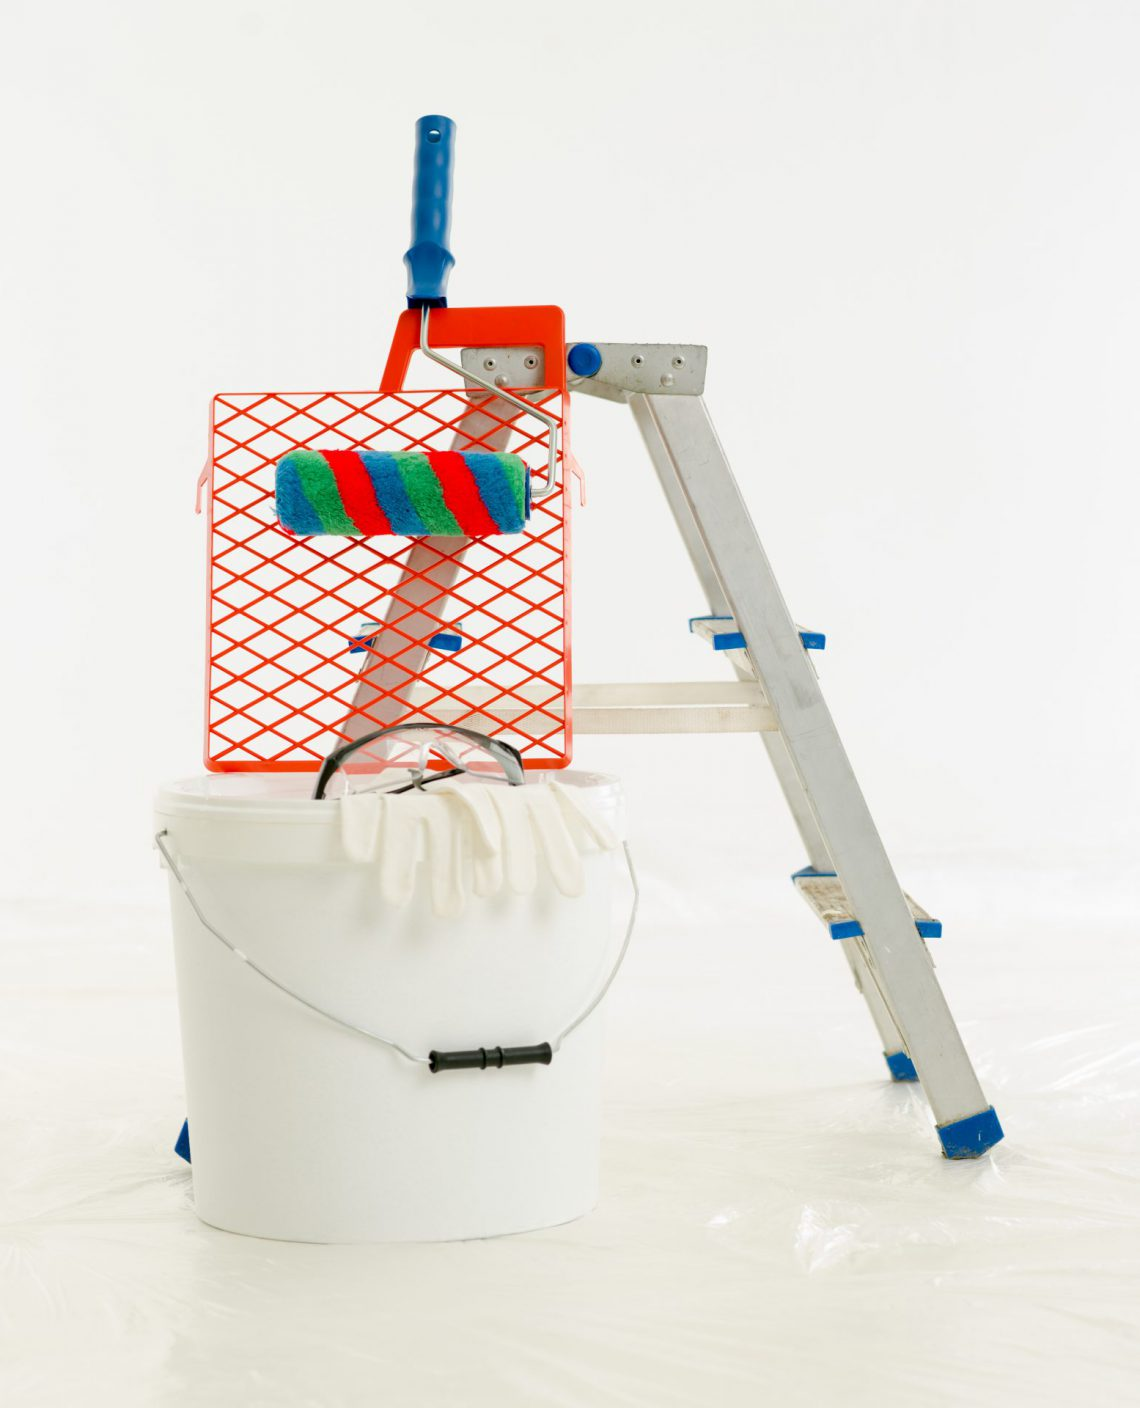 Construction brush, roller, aluminium ladder. The renovation of the house, home repairs. Construction tools, products.